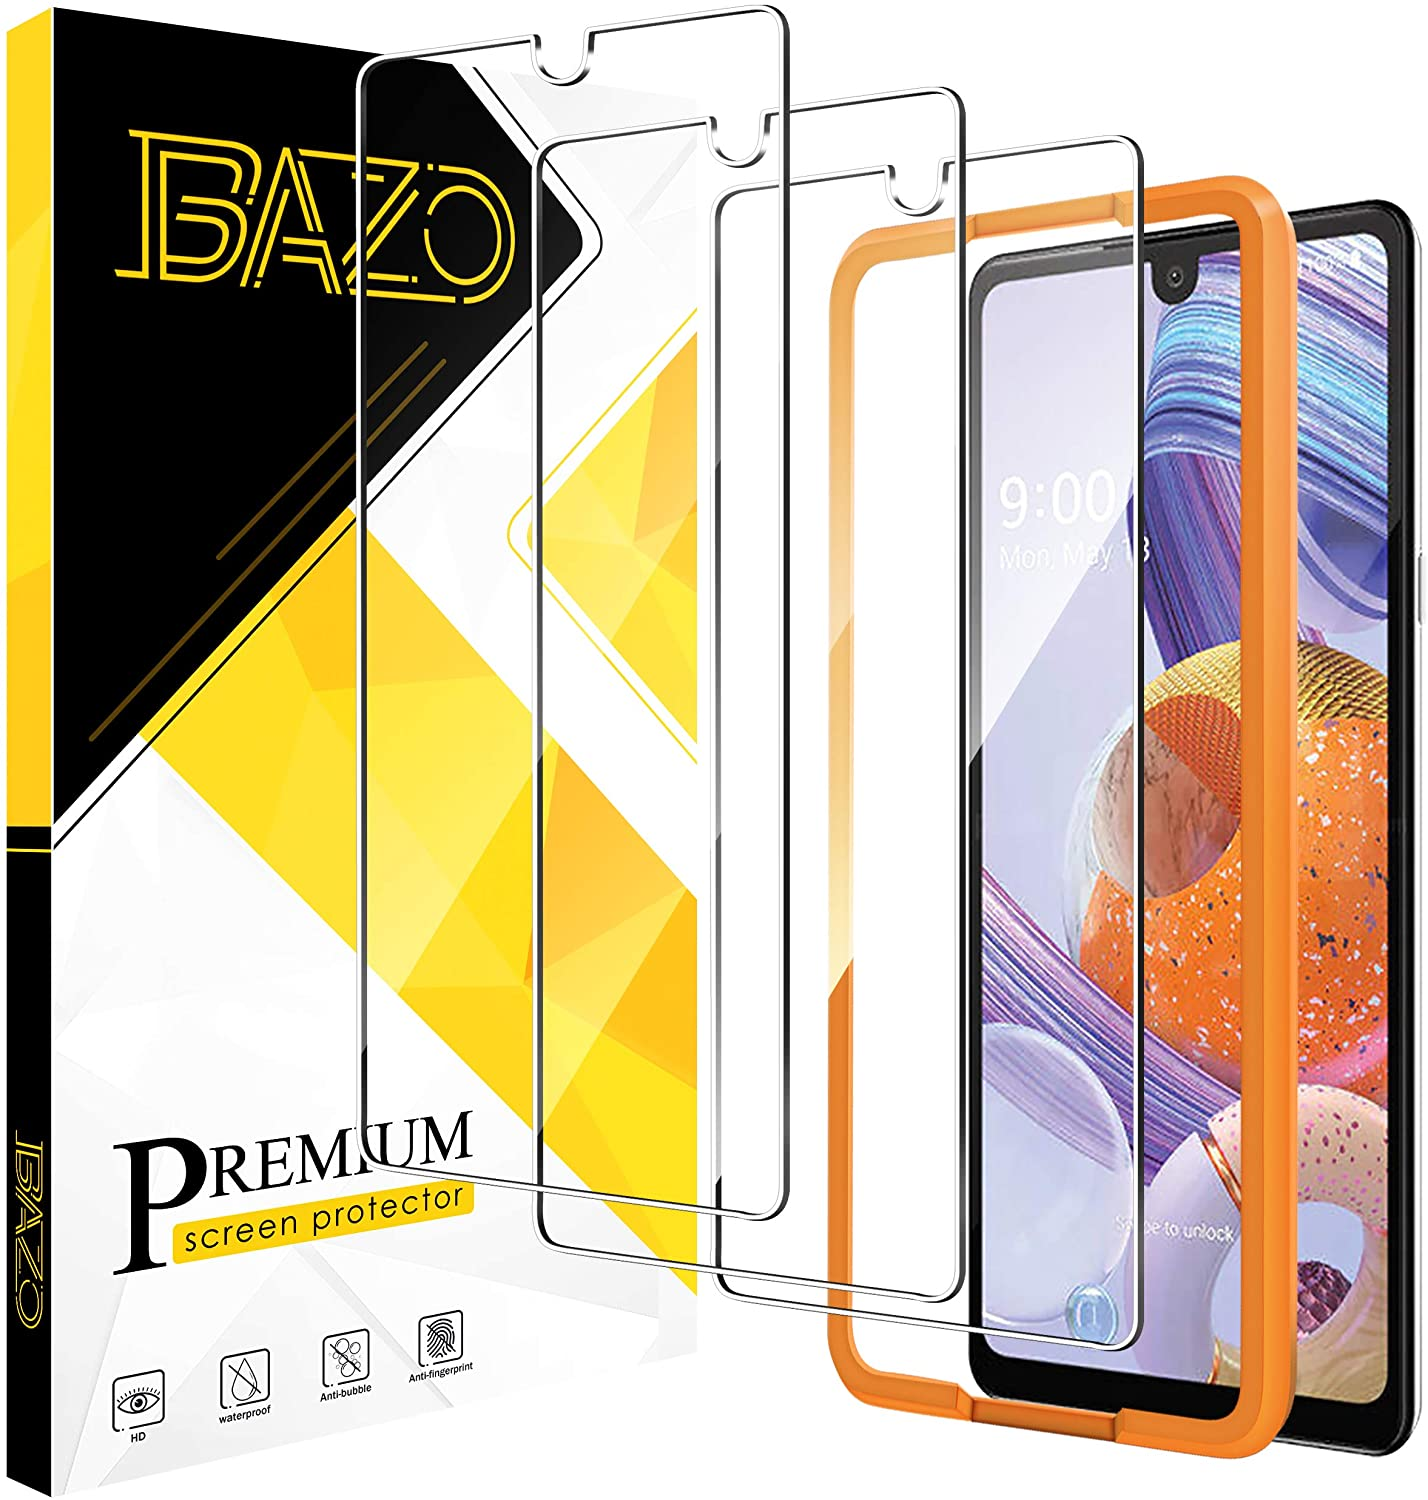 BAZO 3 Pack Screen Protector Tempered Glass for LG Stylo 6 with True Touch [Anti-Scratch] [Alignment Easy Installation Frame] HD [Fit with Most Cases]